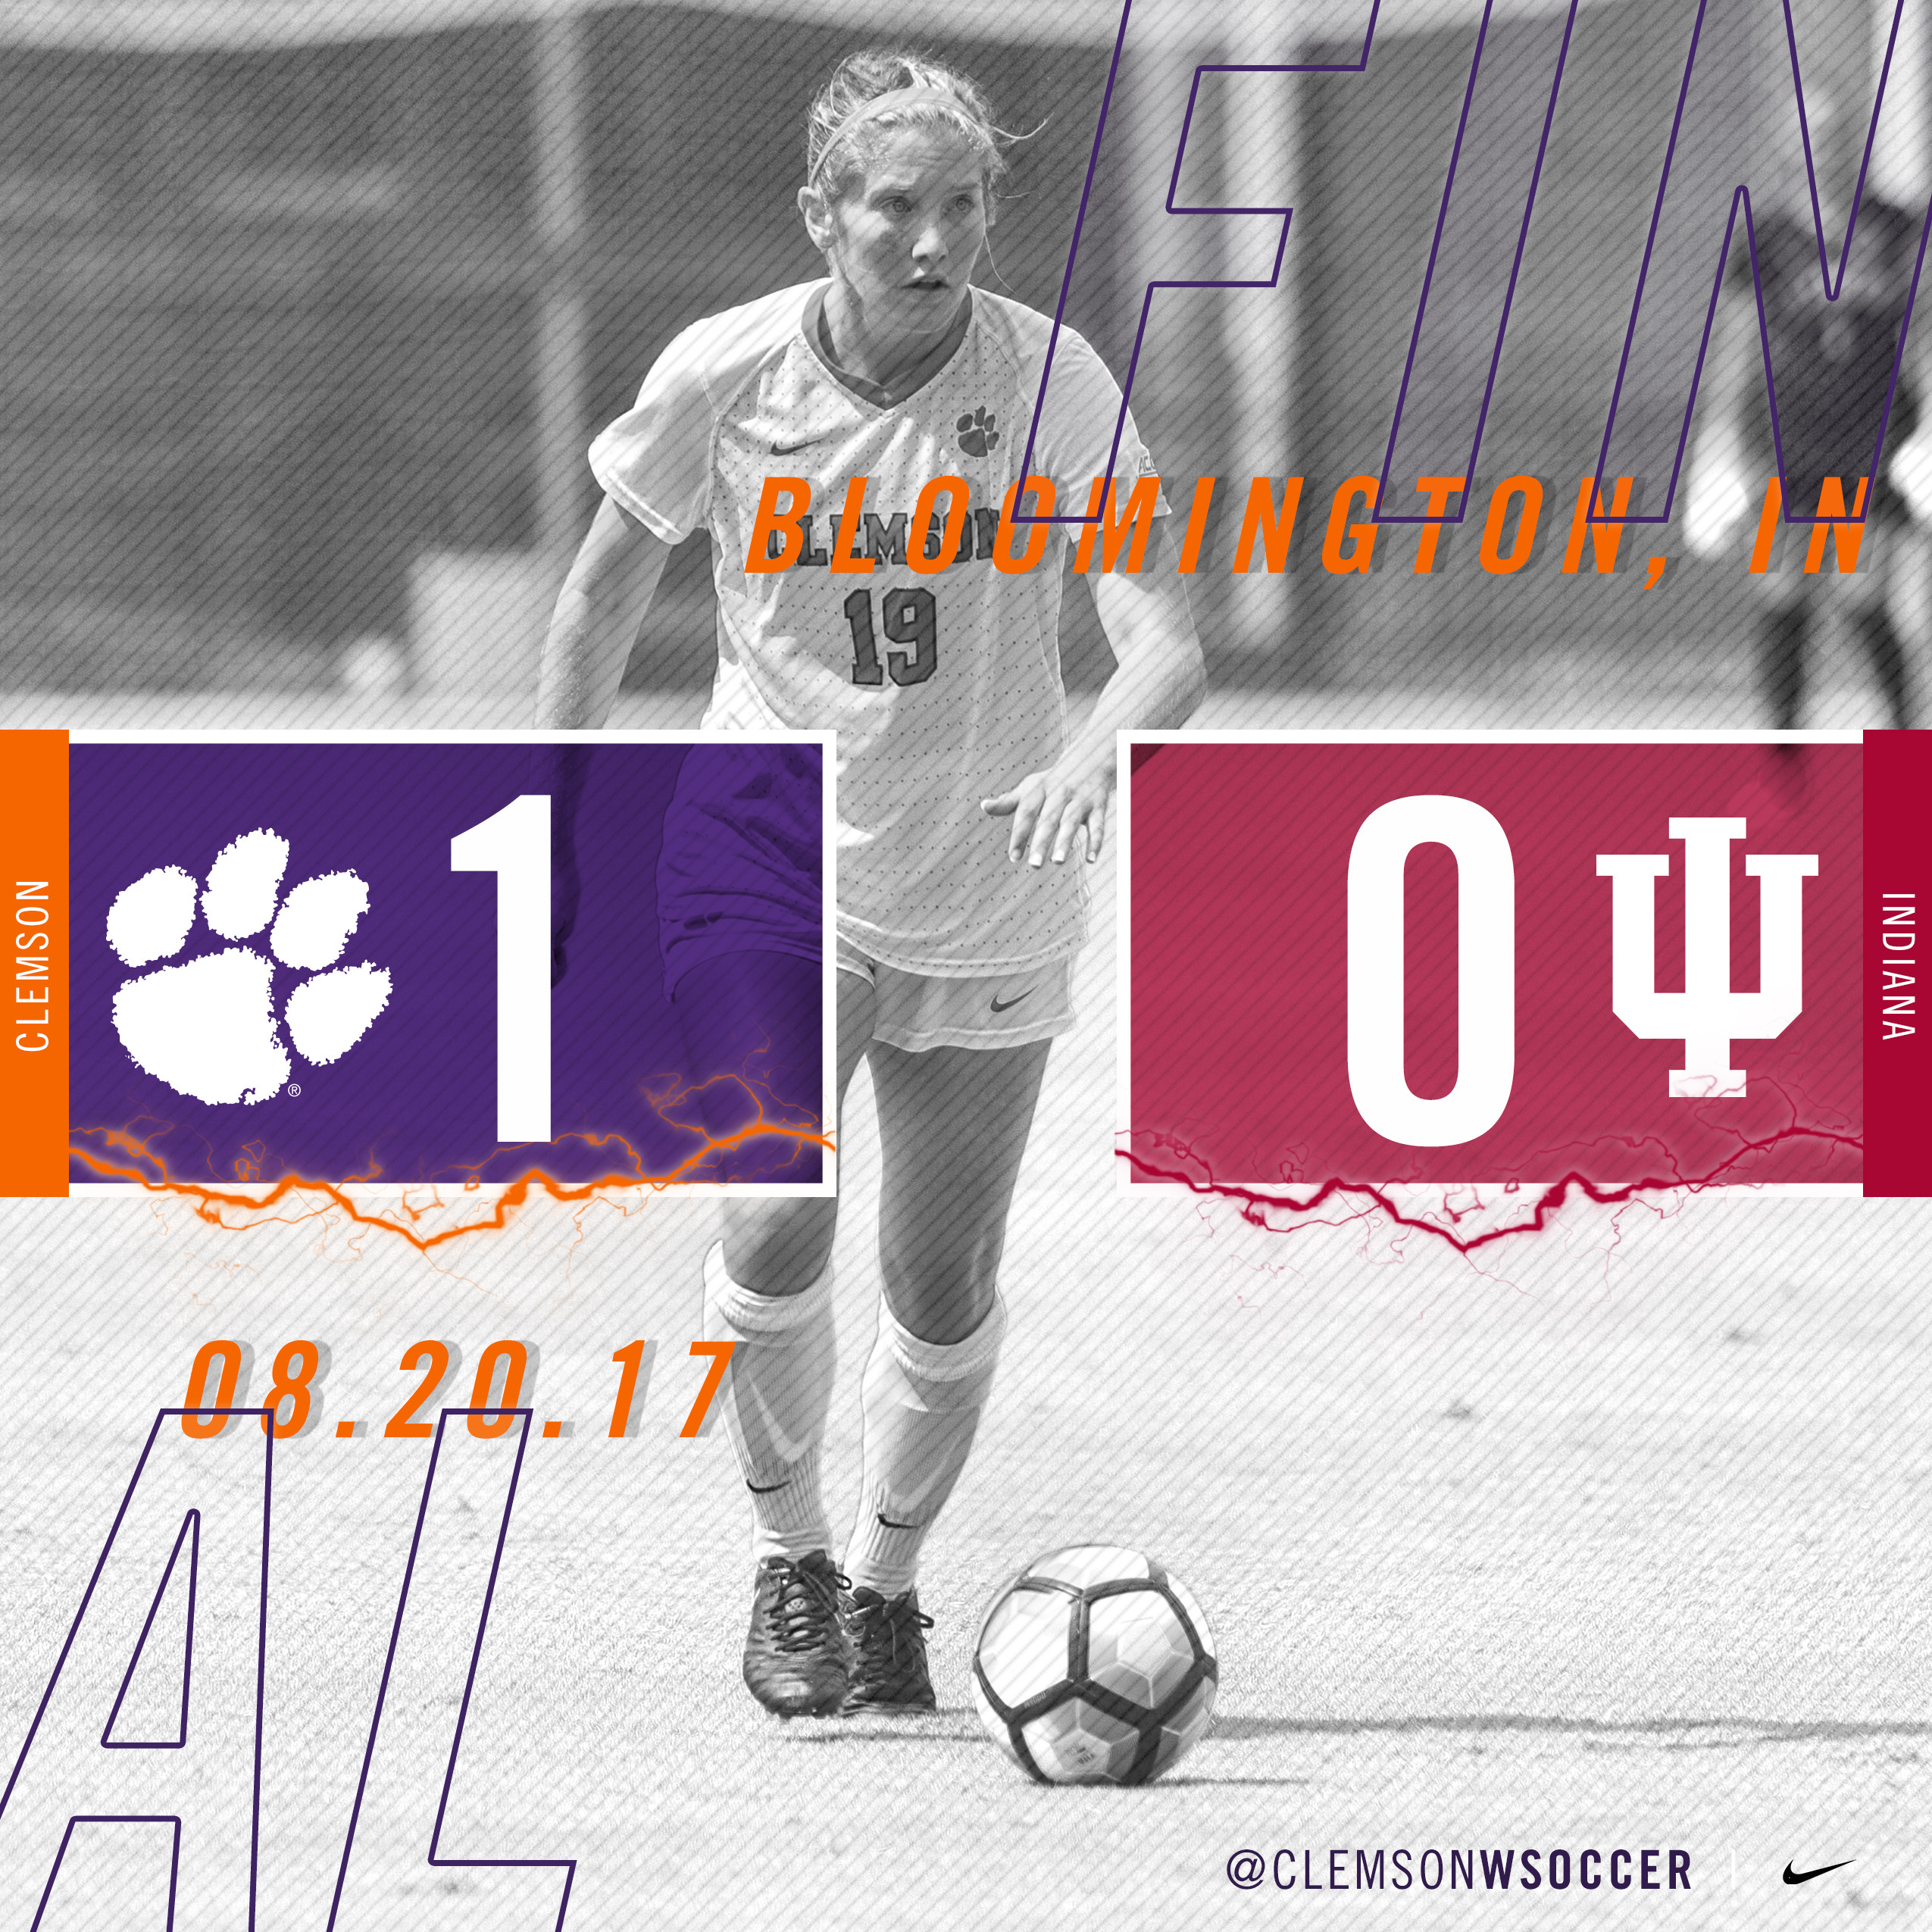 Tigers Defeat Indiana 1-0, Win Hoosier Challenge Cup